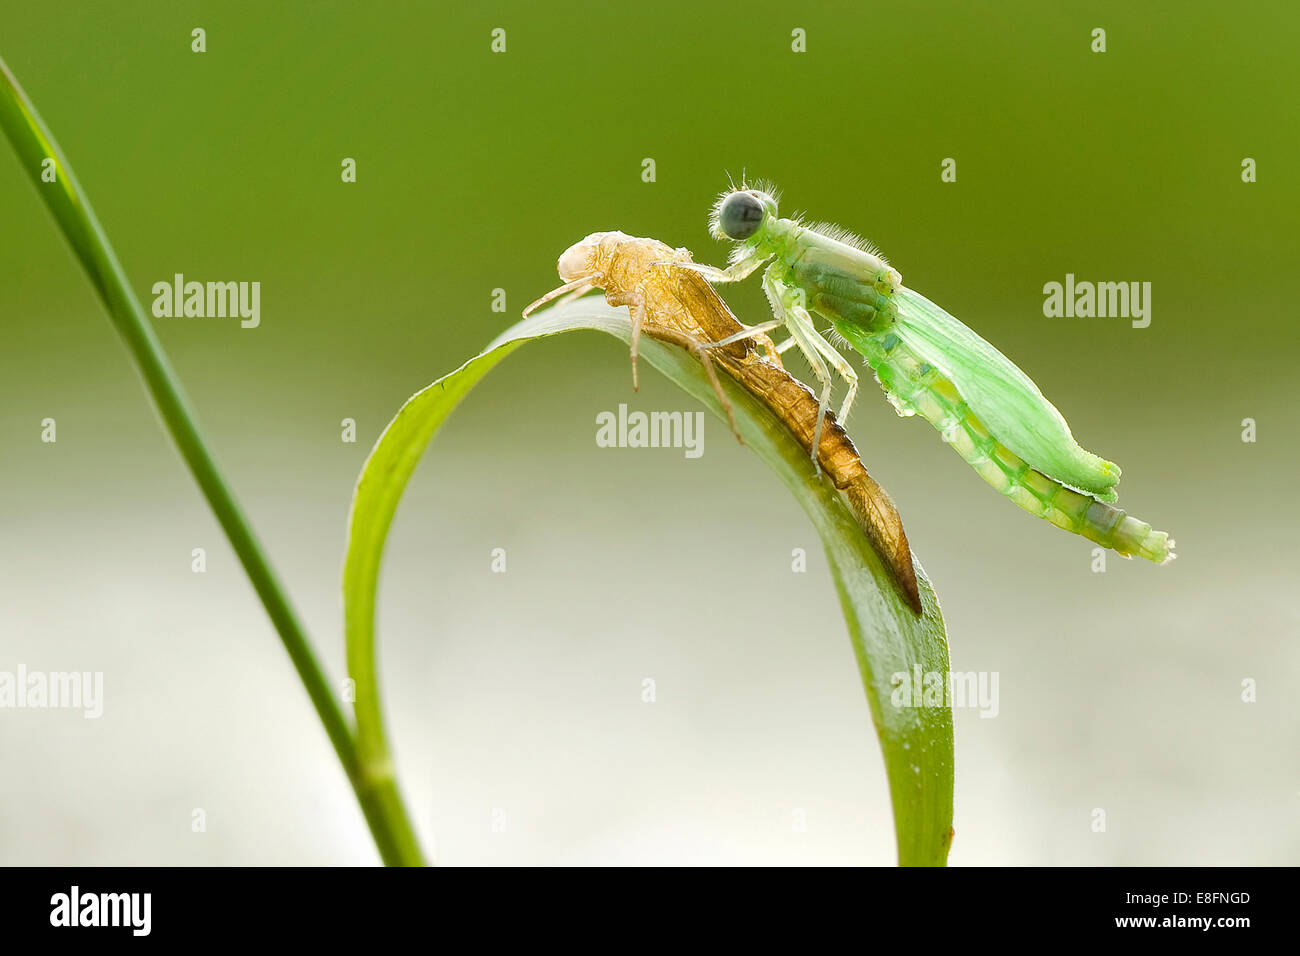 Indonesia, Pontianak, Baby dragonfly - Stock Image